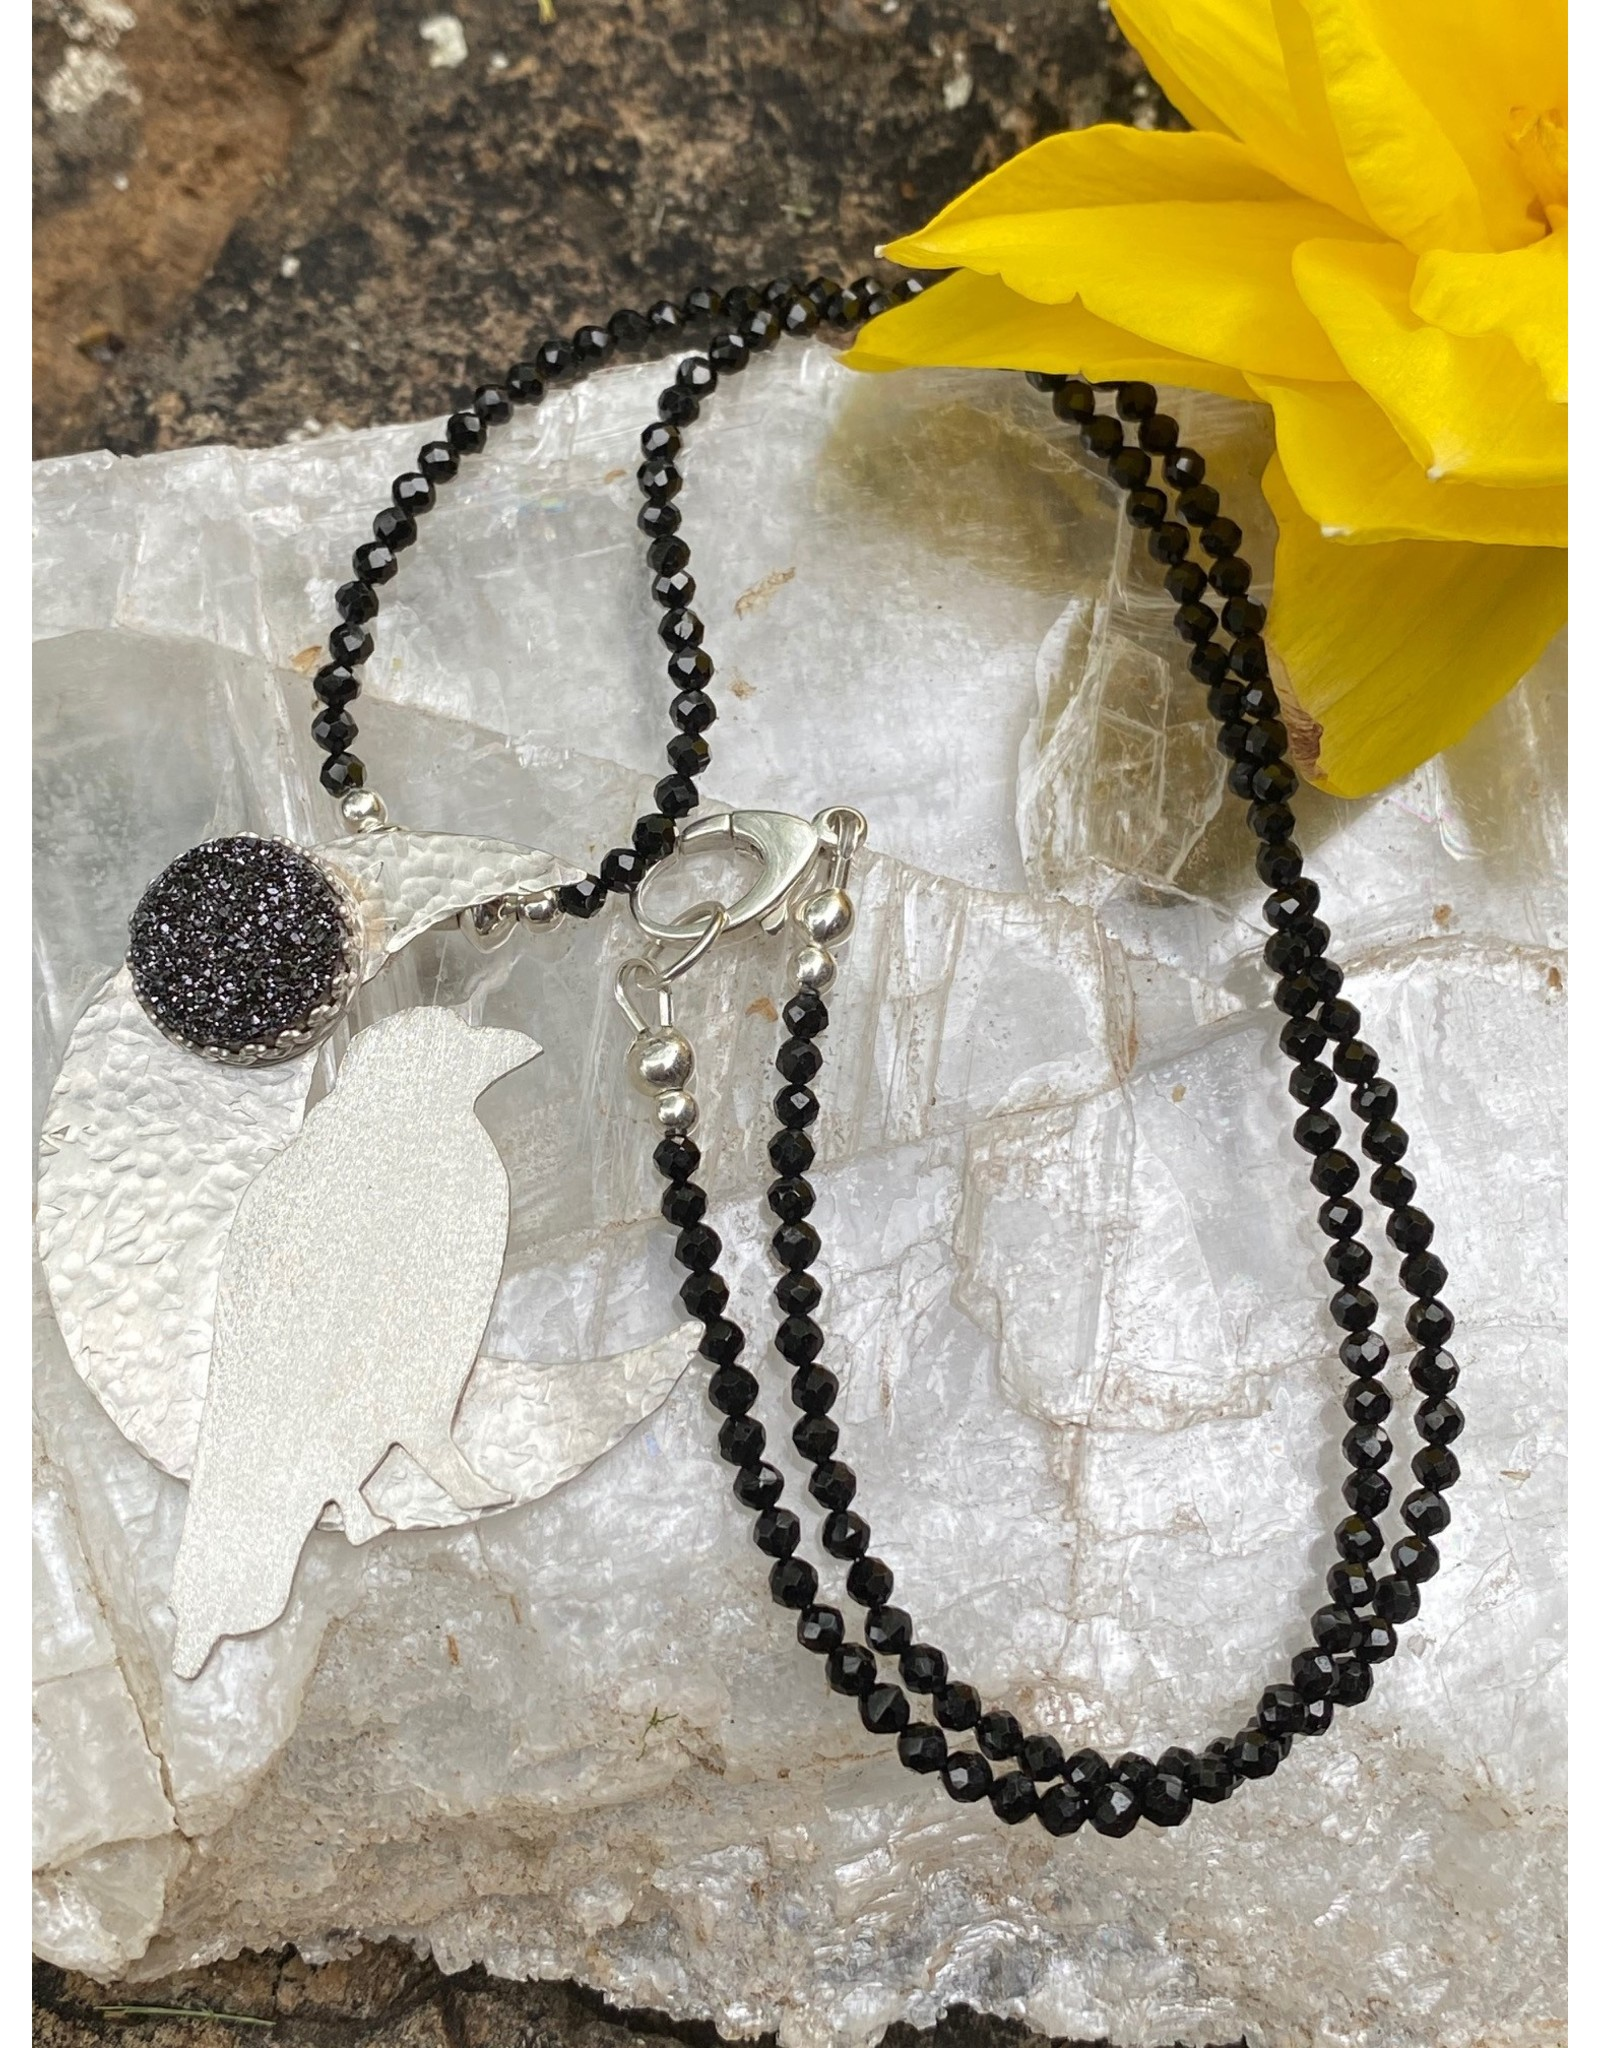 Annette Colby - Jeweler Sterling Raven Moon Black Druzy Necklace - Annette Colby